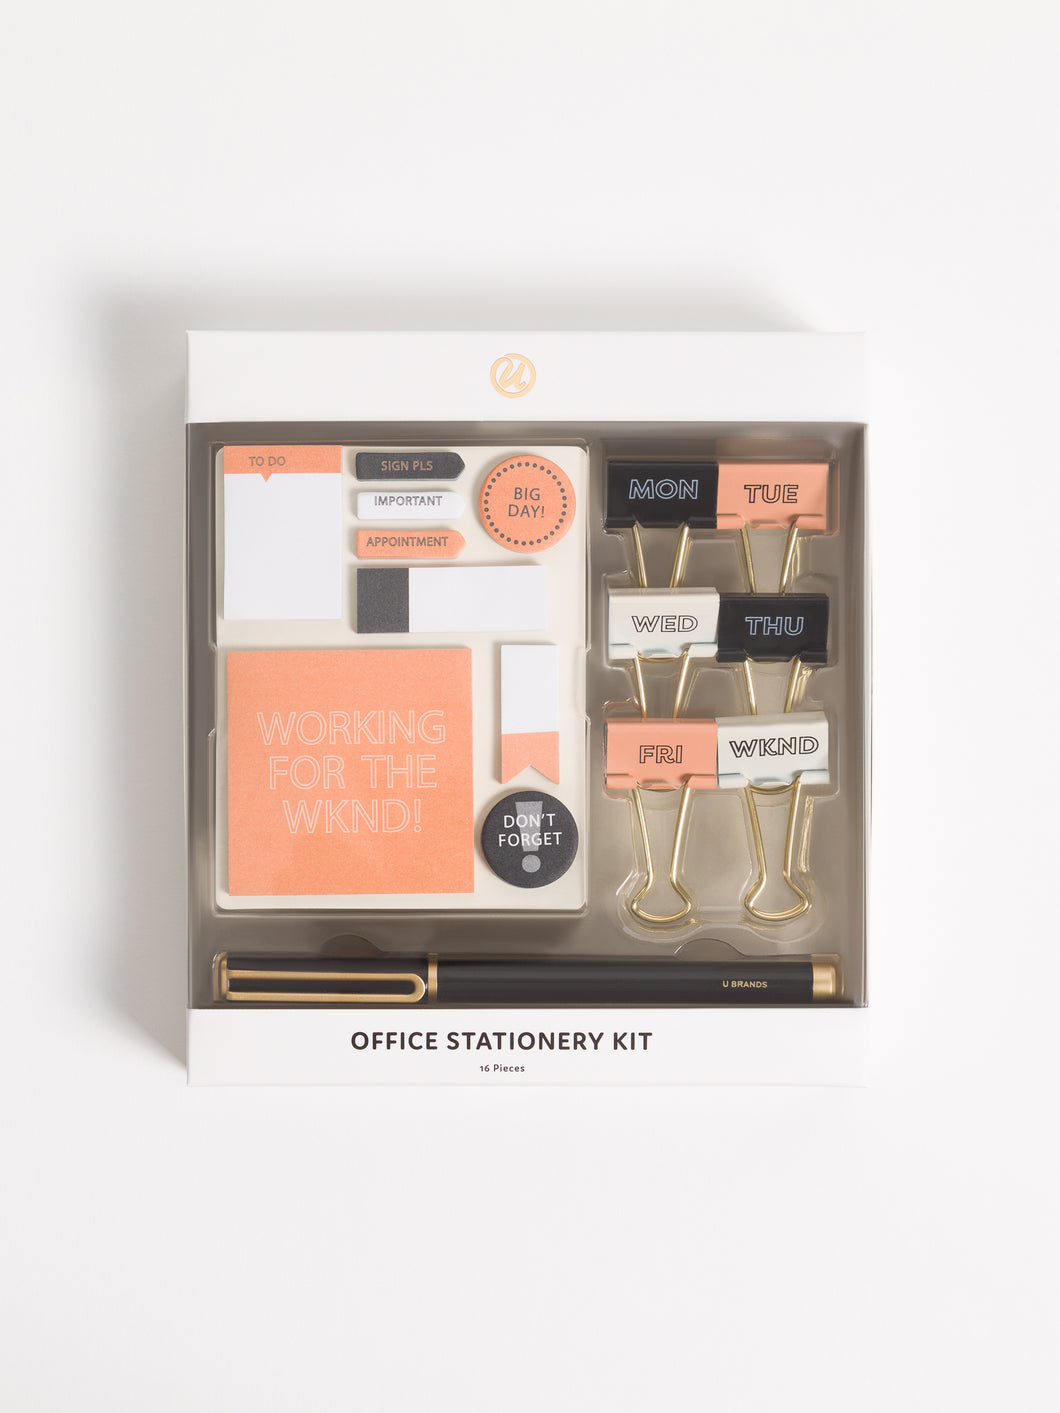 Work For the Weekend Office Kit, Set of 16